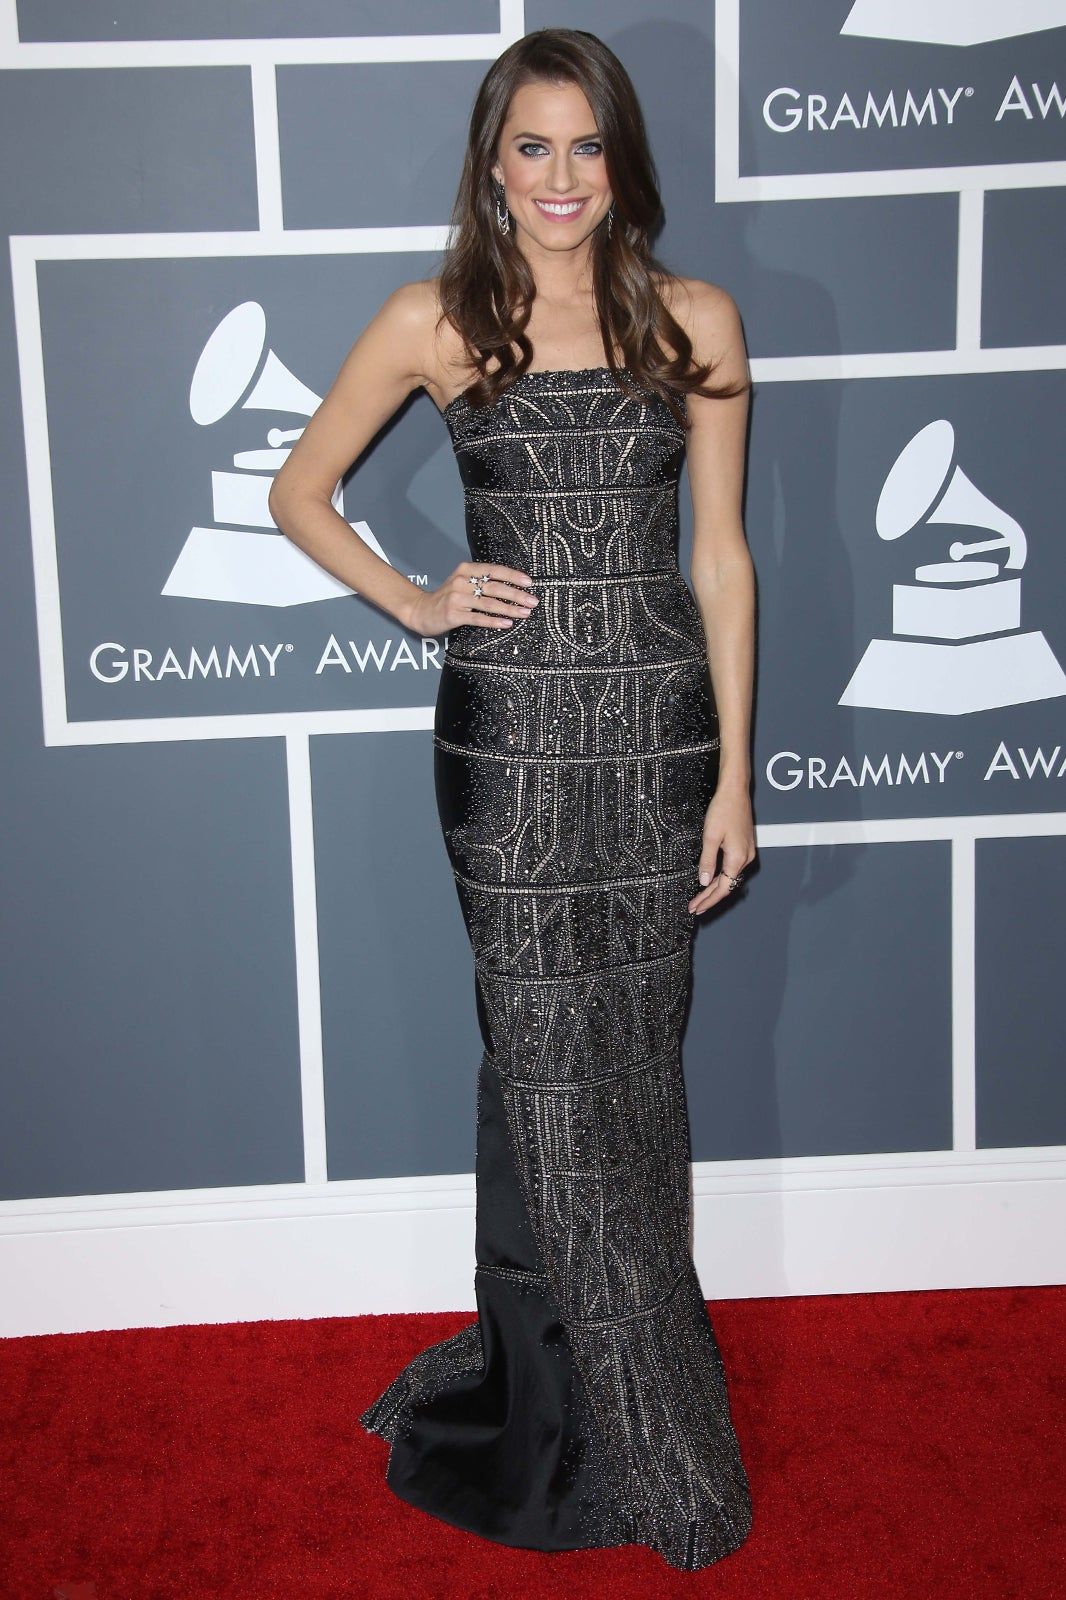 d65422f39183 Grammys Red Carpet 2013 - Best-Dressed Celebrities